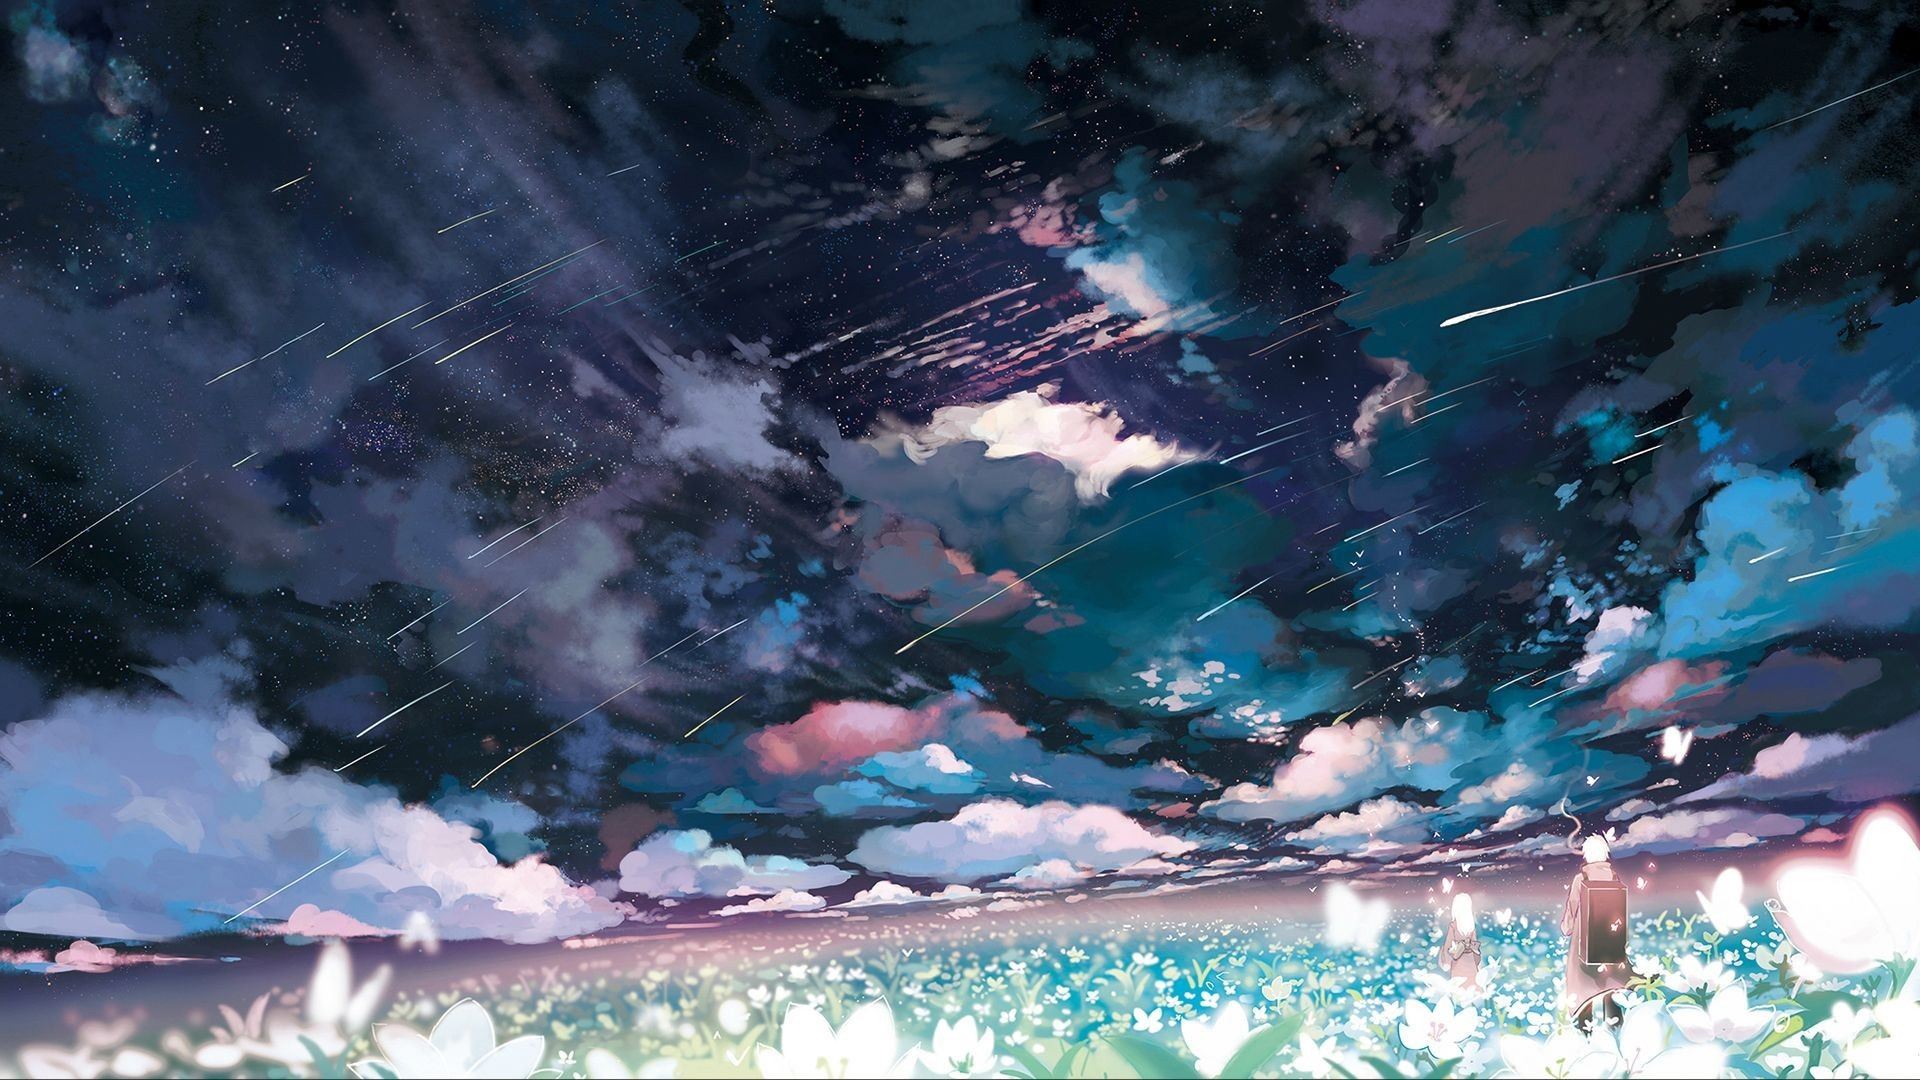 Aesthetic Anime hd wallpaper download